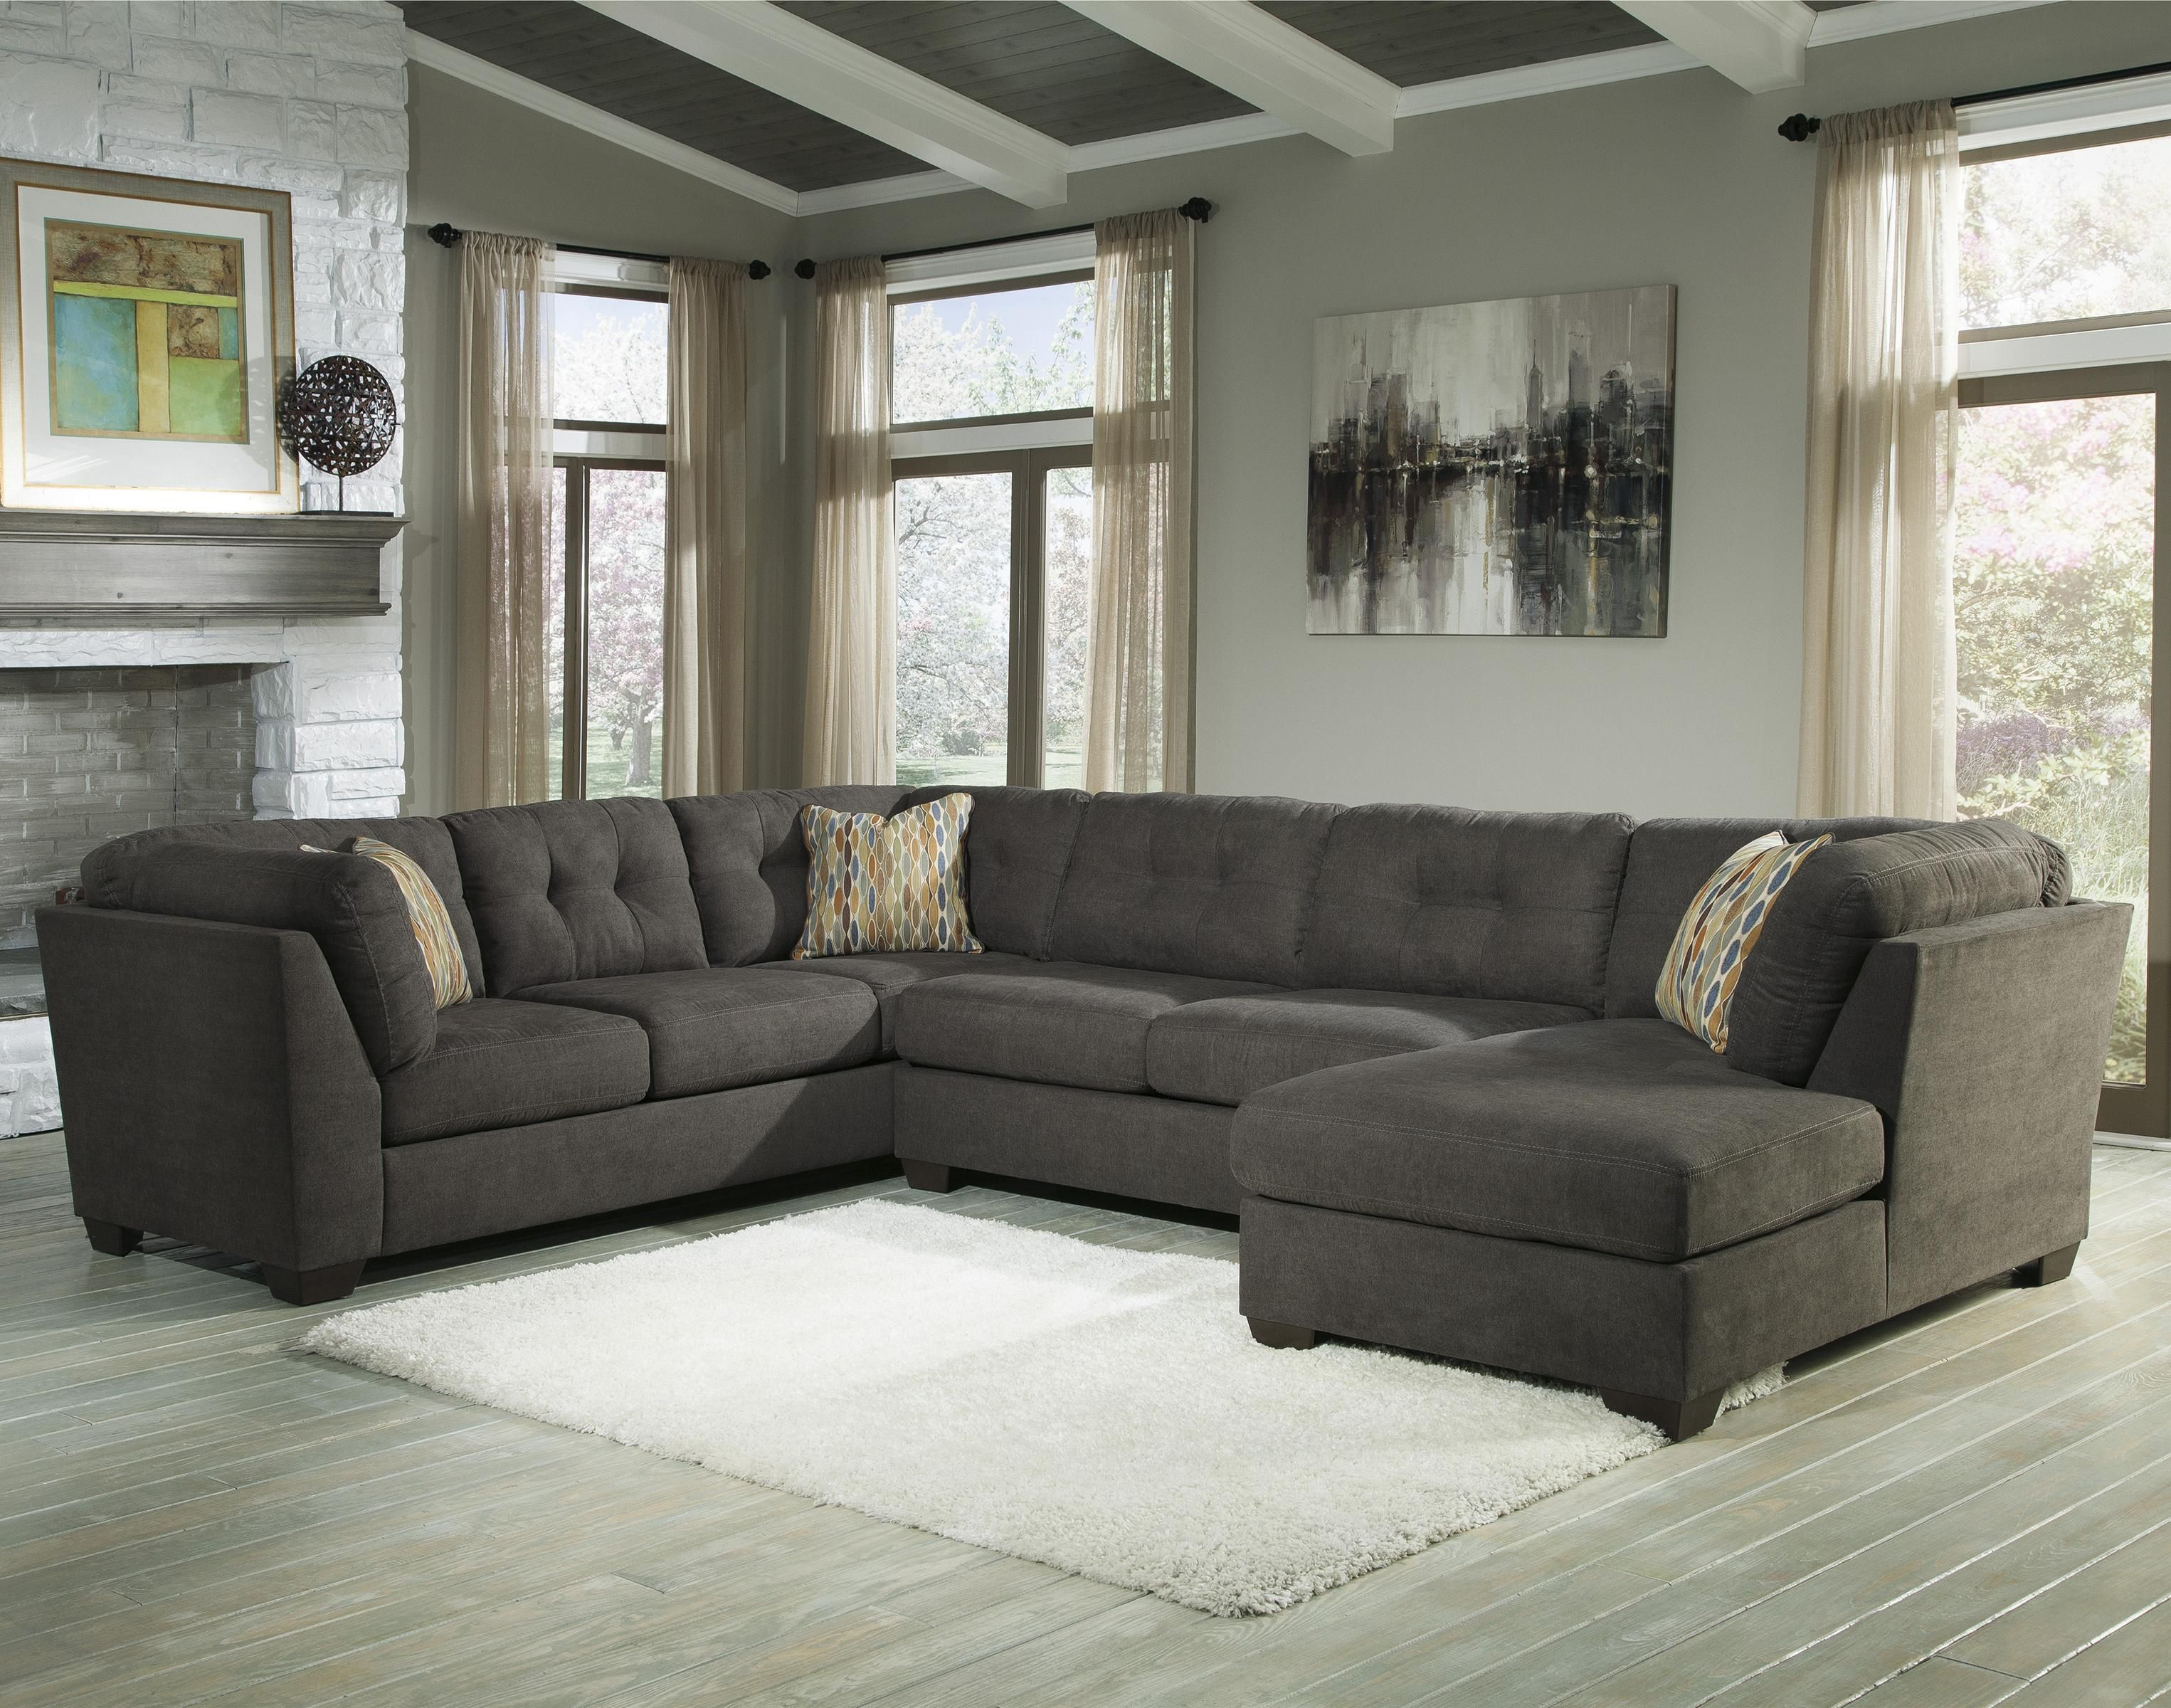 Delta City Steel 3 Piece Modular Sectional with Right Chaise by